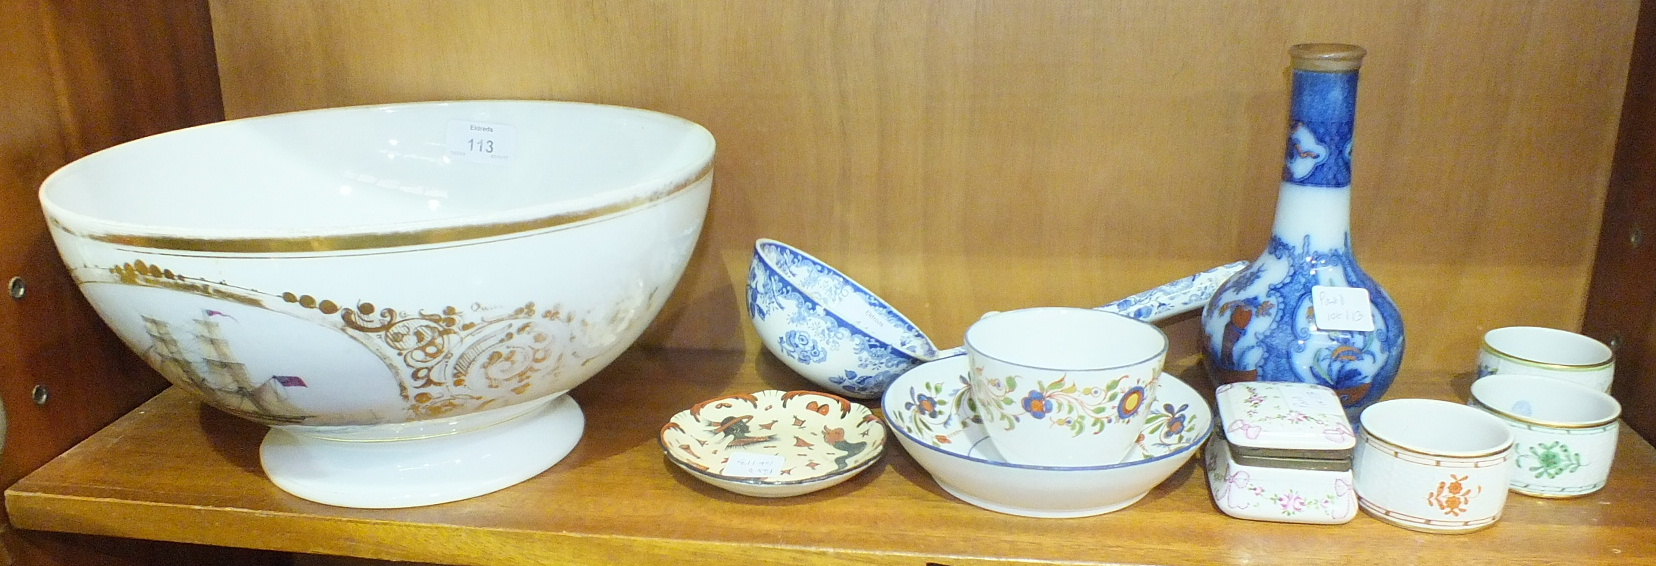 Lot 113 - An English blue and white pattern soup ladle, a Continental ceramic trinket box and cover, 7cm wide,